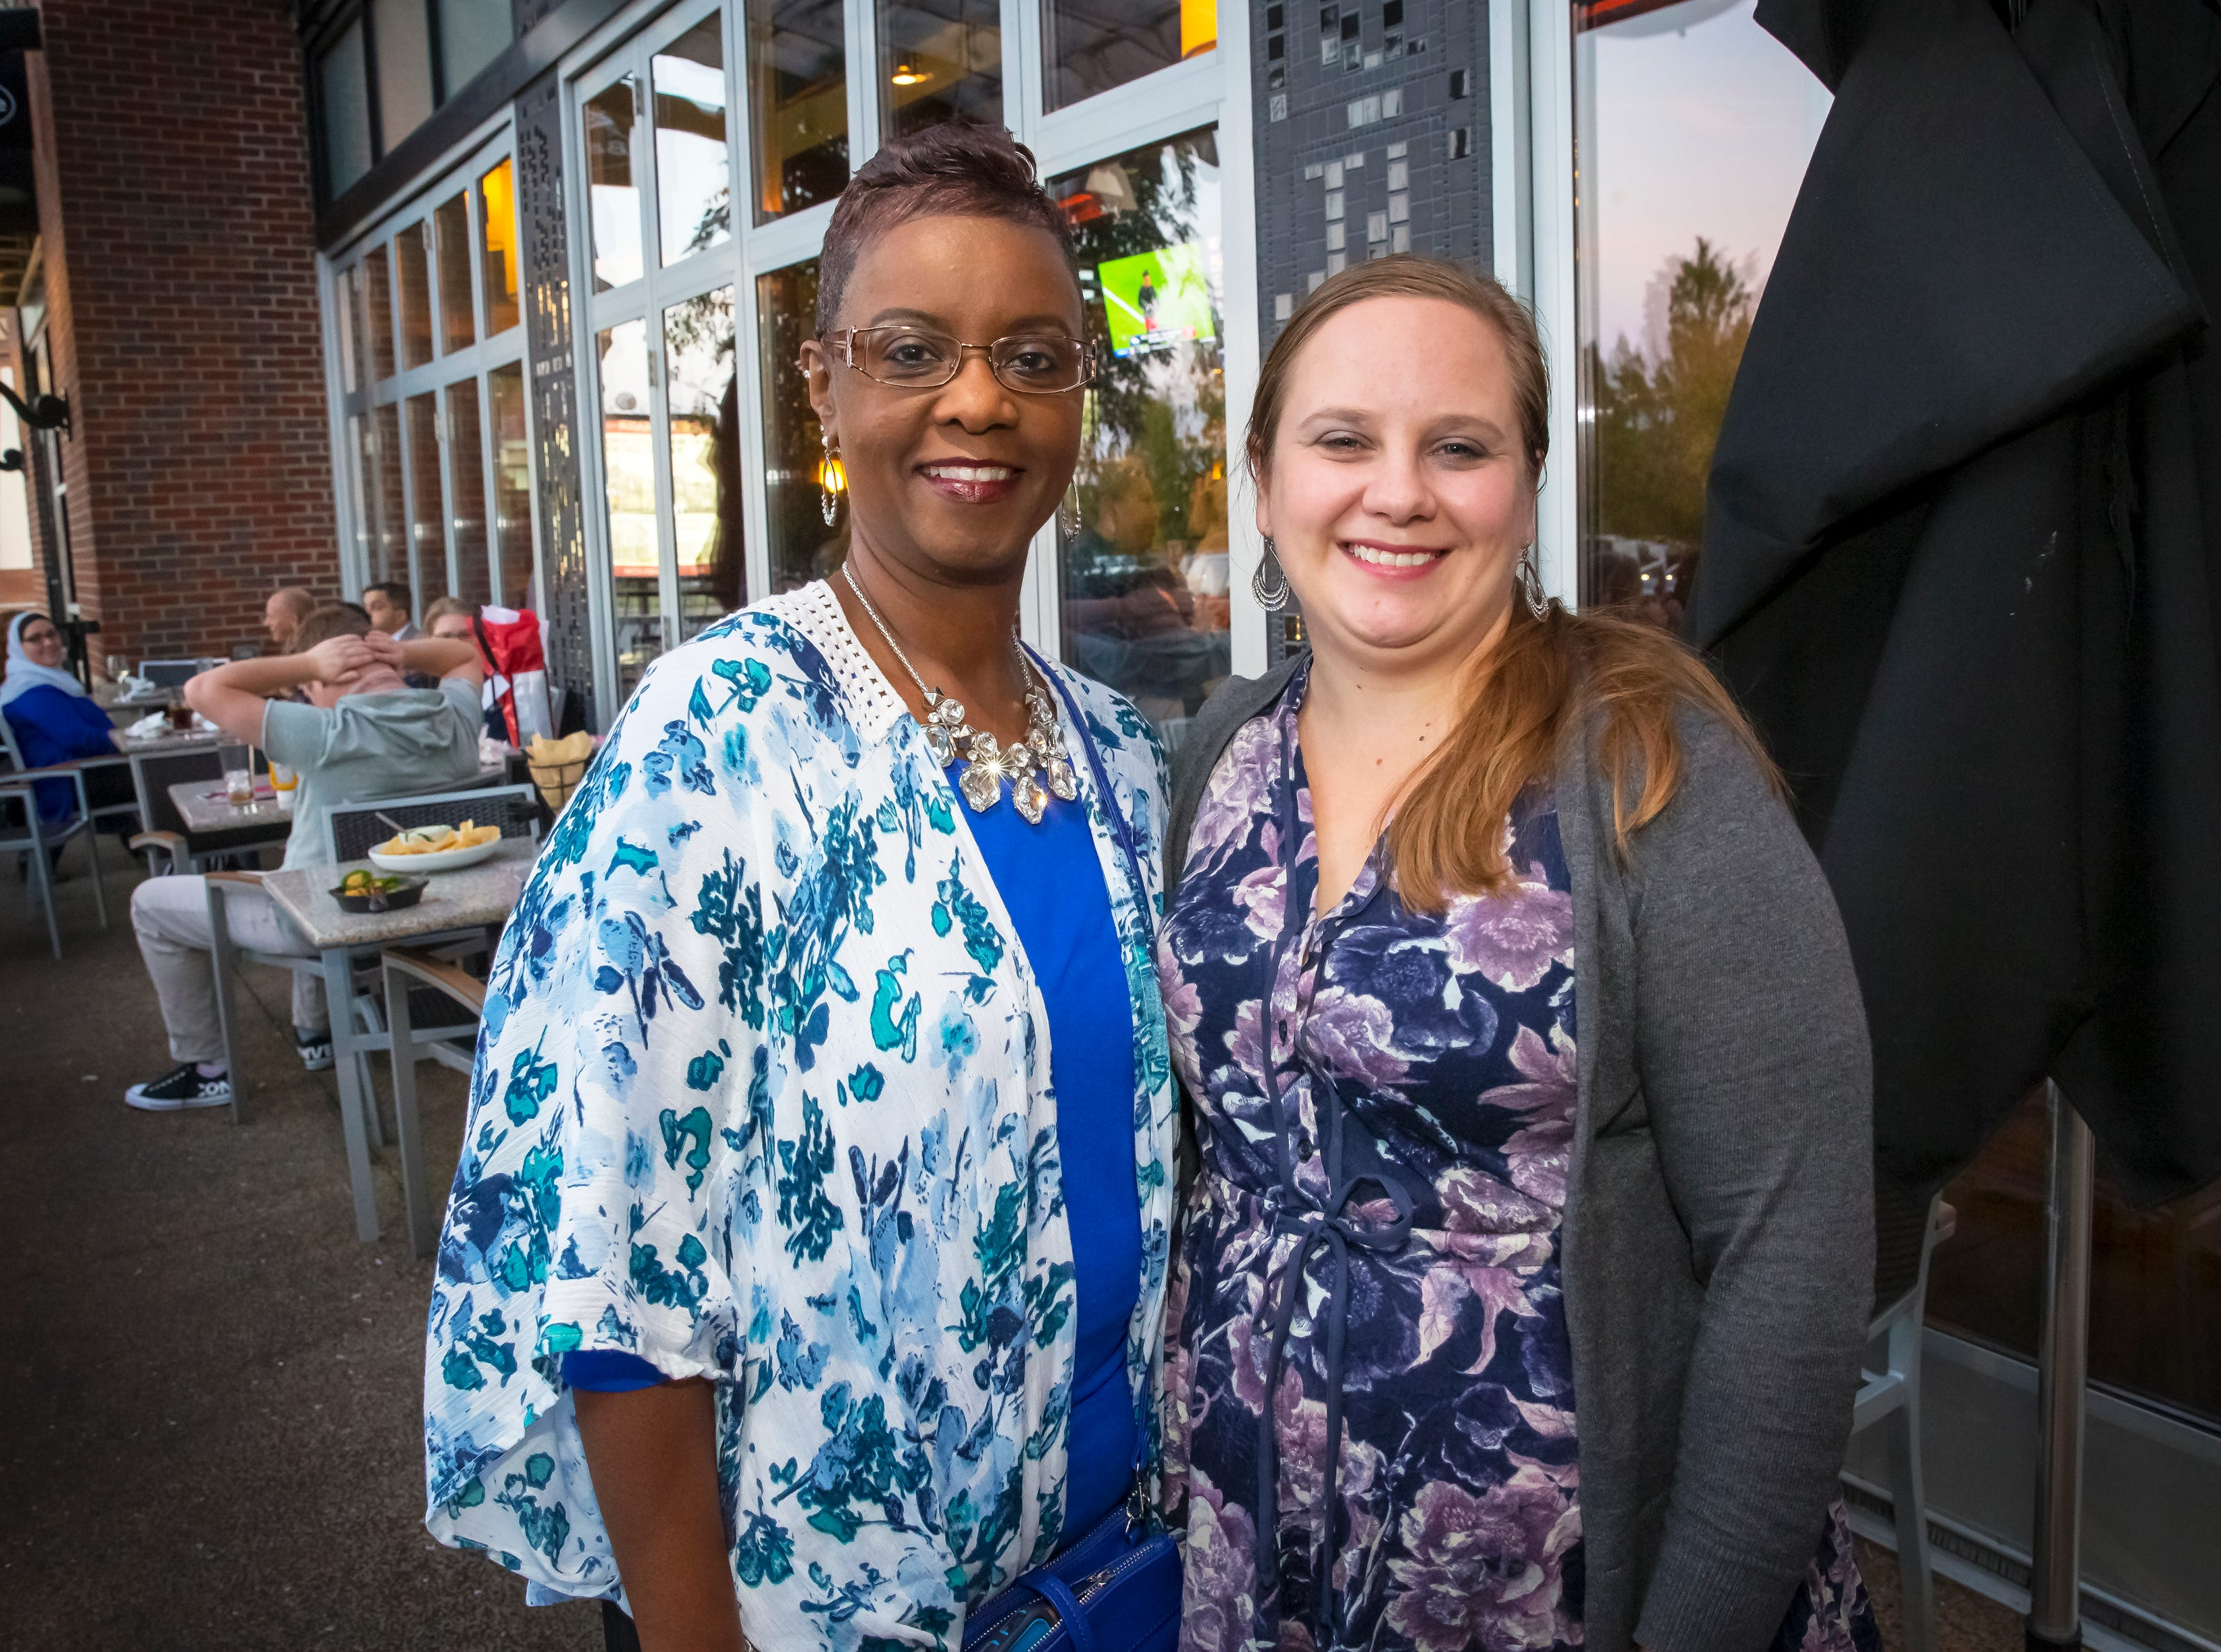 Kezkyn Sellars and Sarah Clark at the Murfreesboro Magazine Most Beautiful People event held at Bar Louie.photo by Jim Davis/for the DNJ